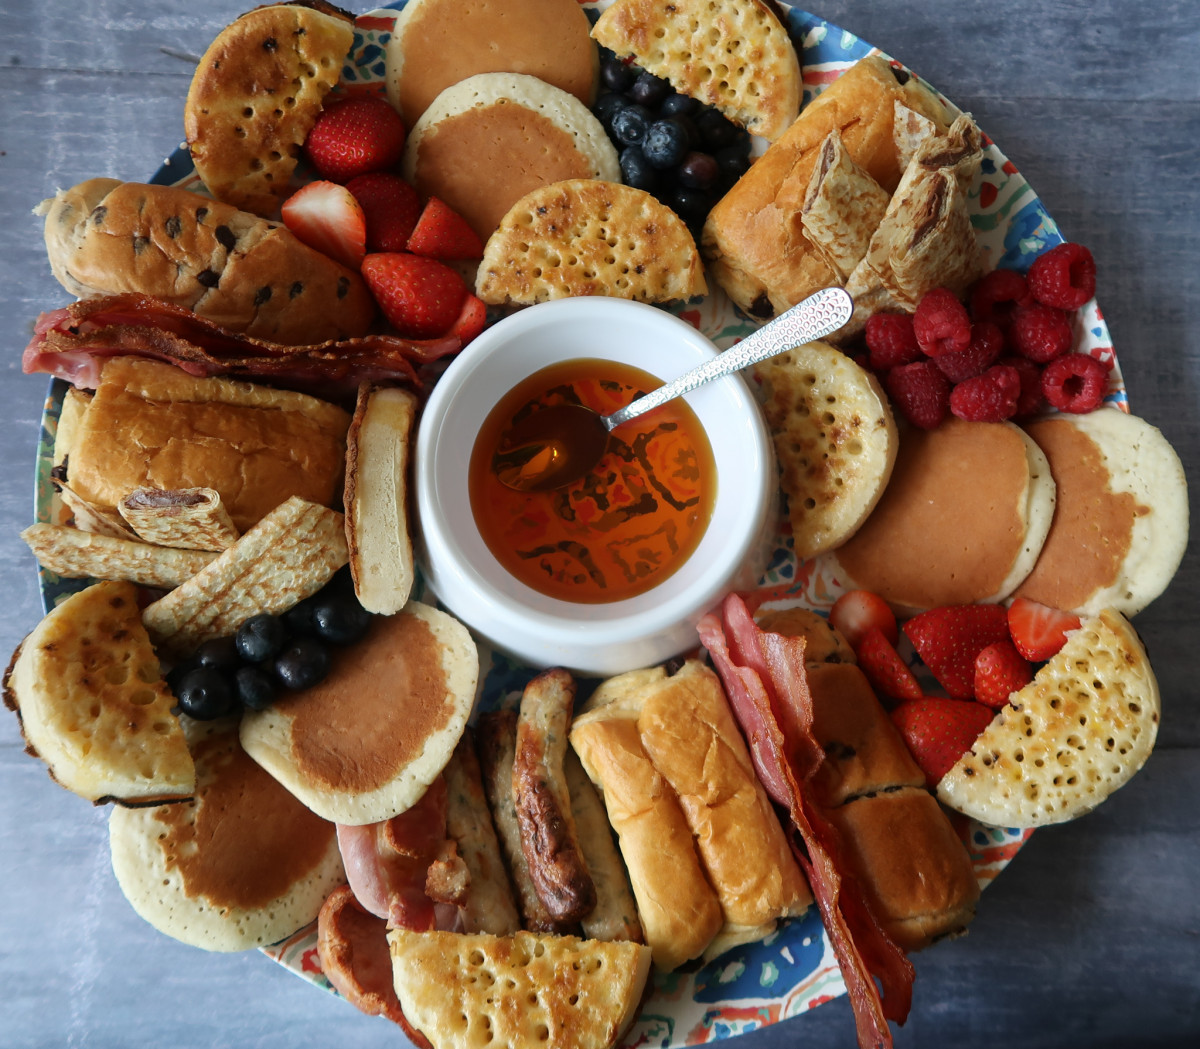 A breakfast platter containing crumpets, bacon, sausages, pain au chocolat, brioche rolls, fruit, and pancakes